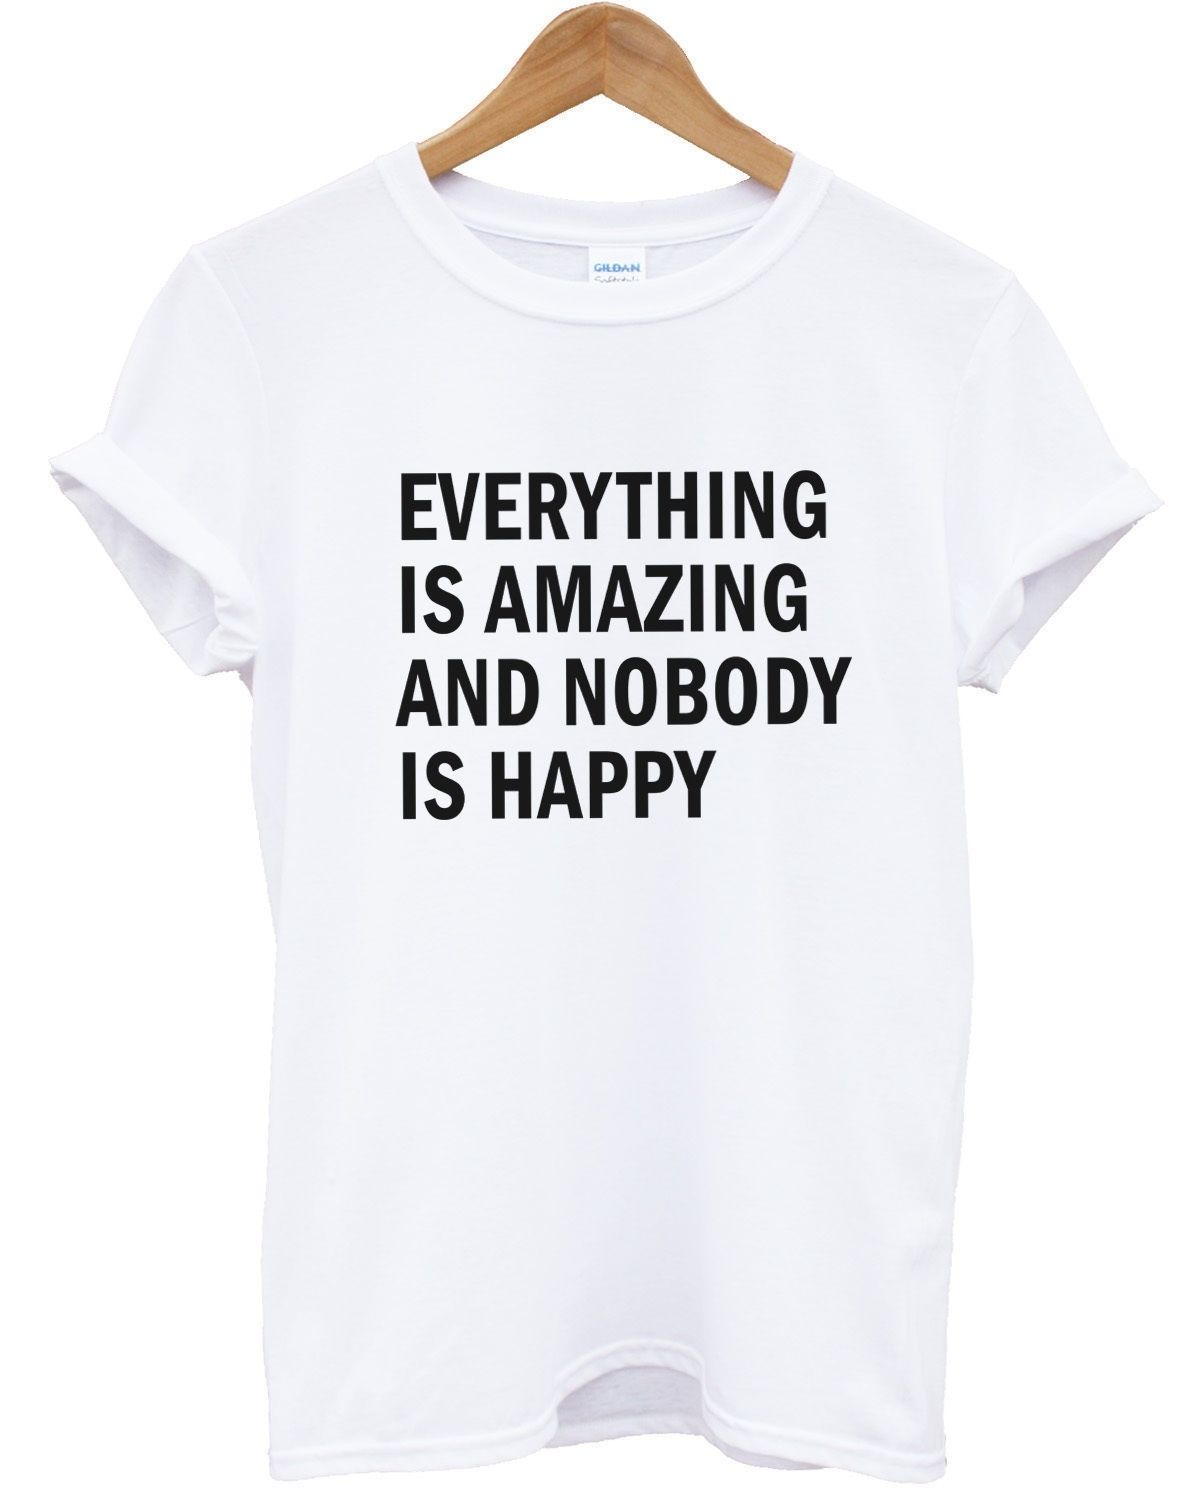 EVERYTHING IS AMAZING AND NOBODY IS HAPPY T SHIRT TOP HIPSTER MEN WOMEN BLOG Fashion Style Men Tee,100% Cotton Classic tee image